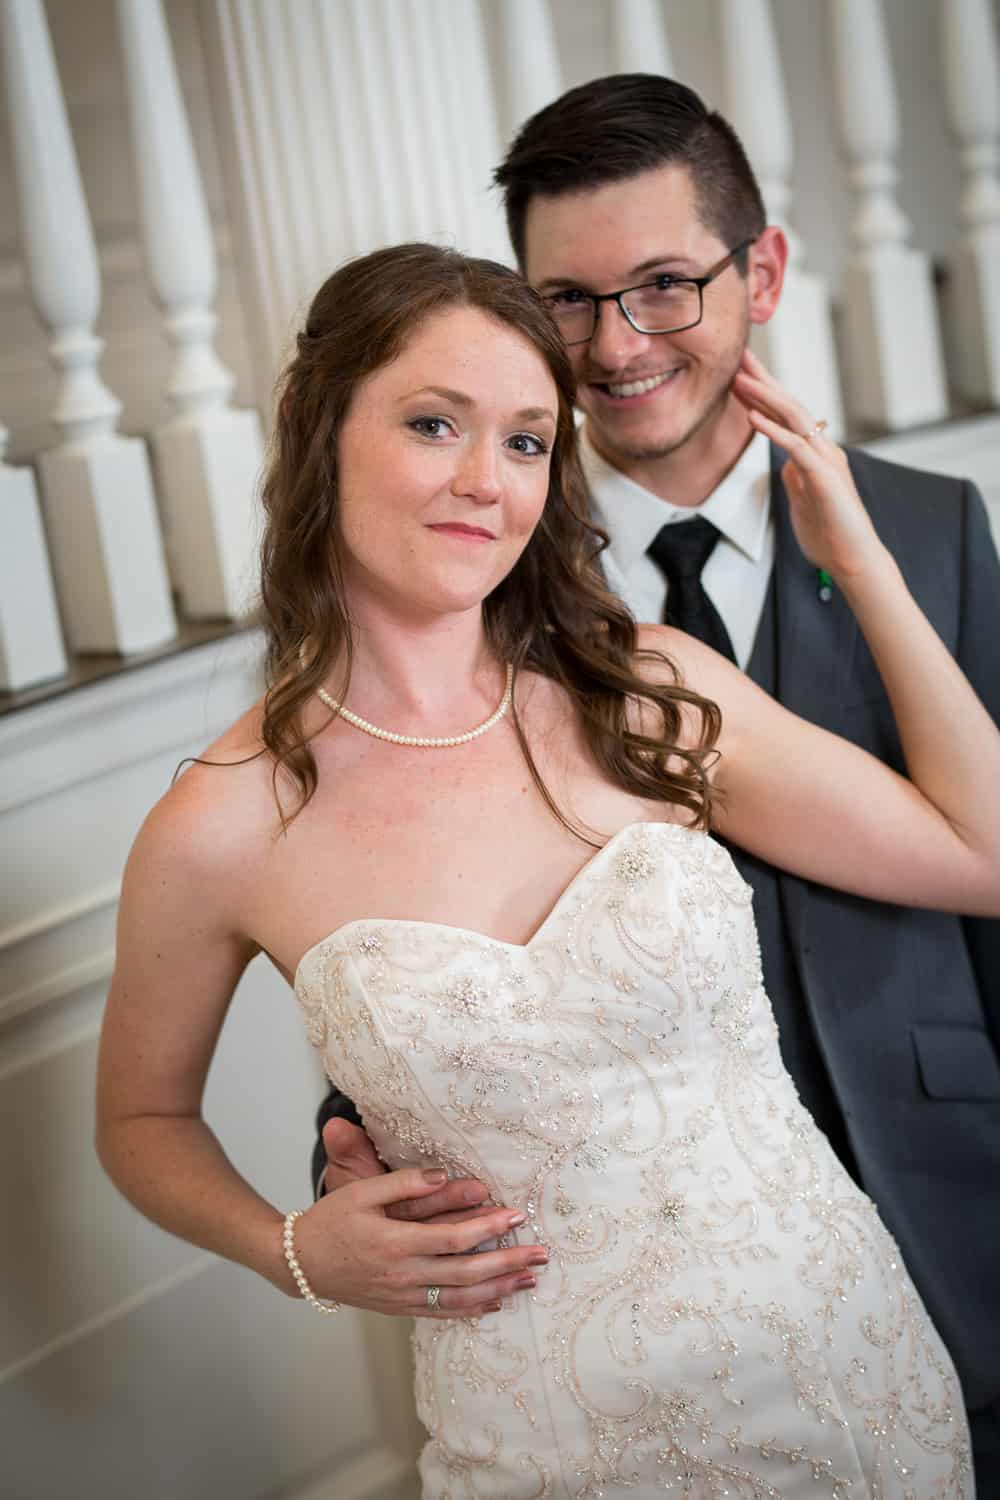 bride with her back on her groom's chest and her arm up embracing his face.